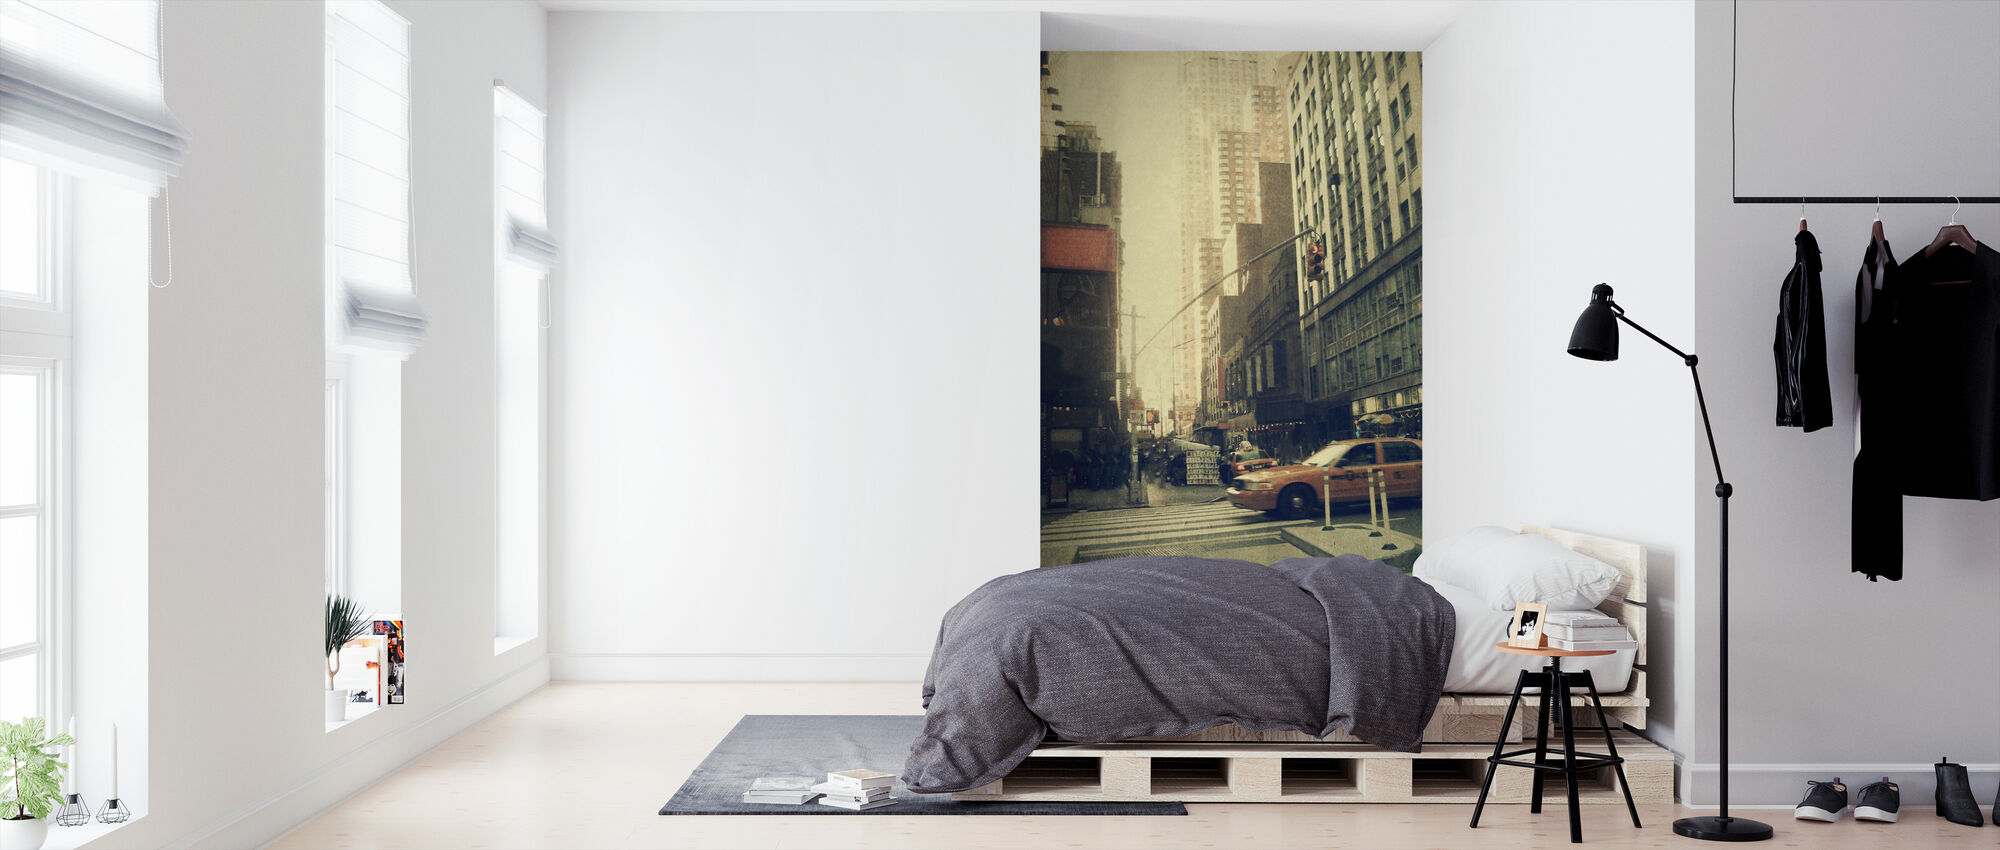 New York City - Broadway - Wallpaper - Bedroom